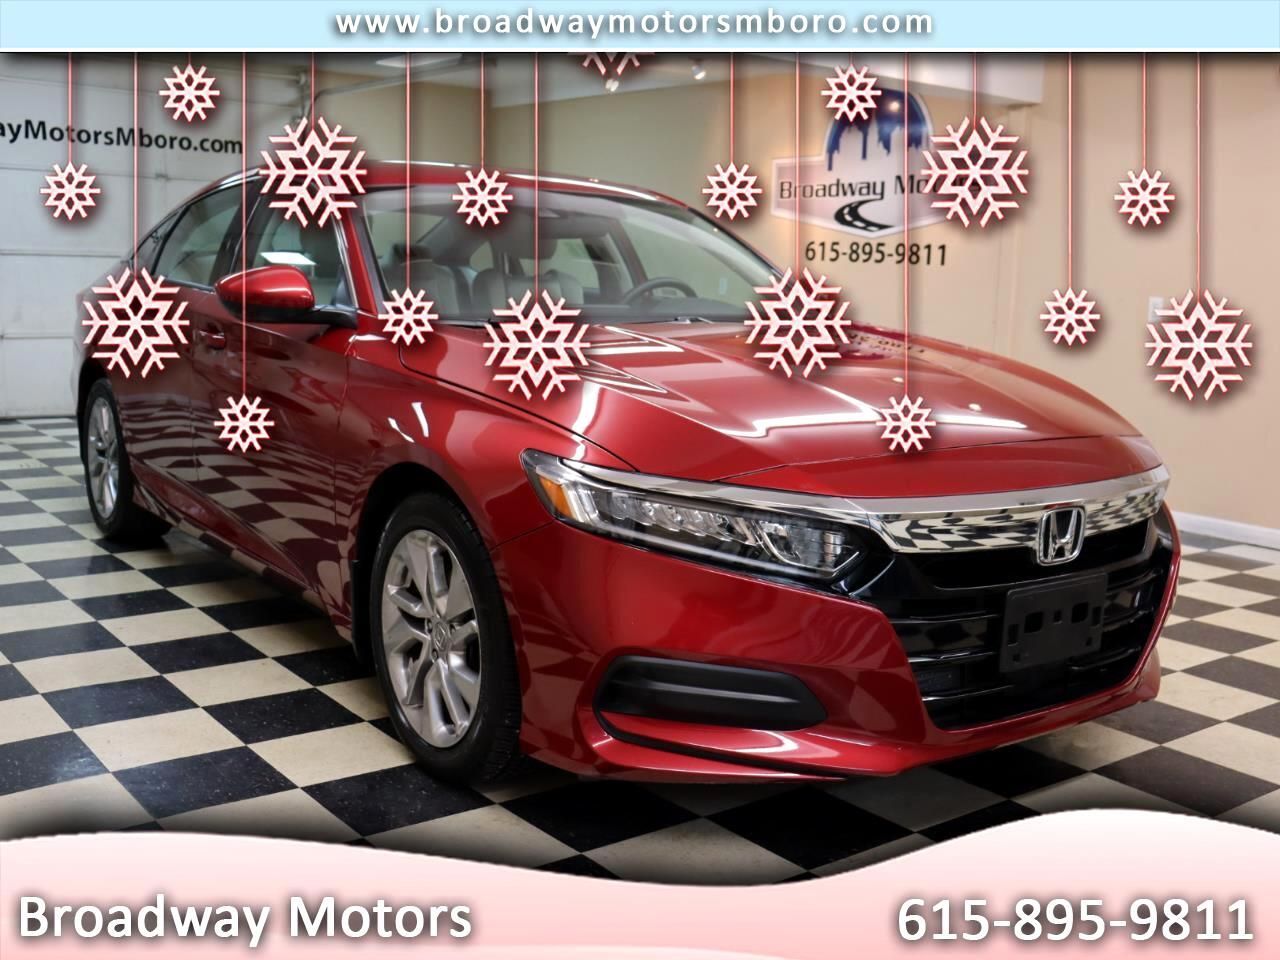 Honda Accord Sedan LX 1.5T CVT 2019